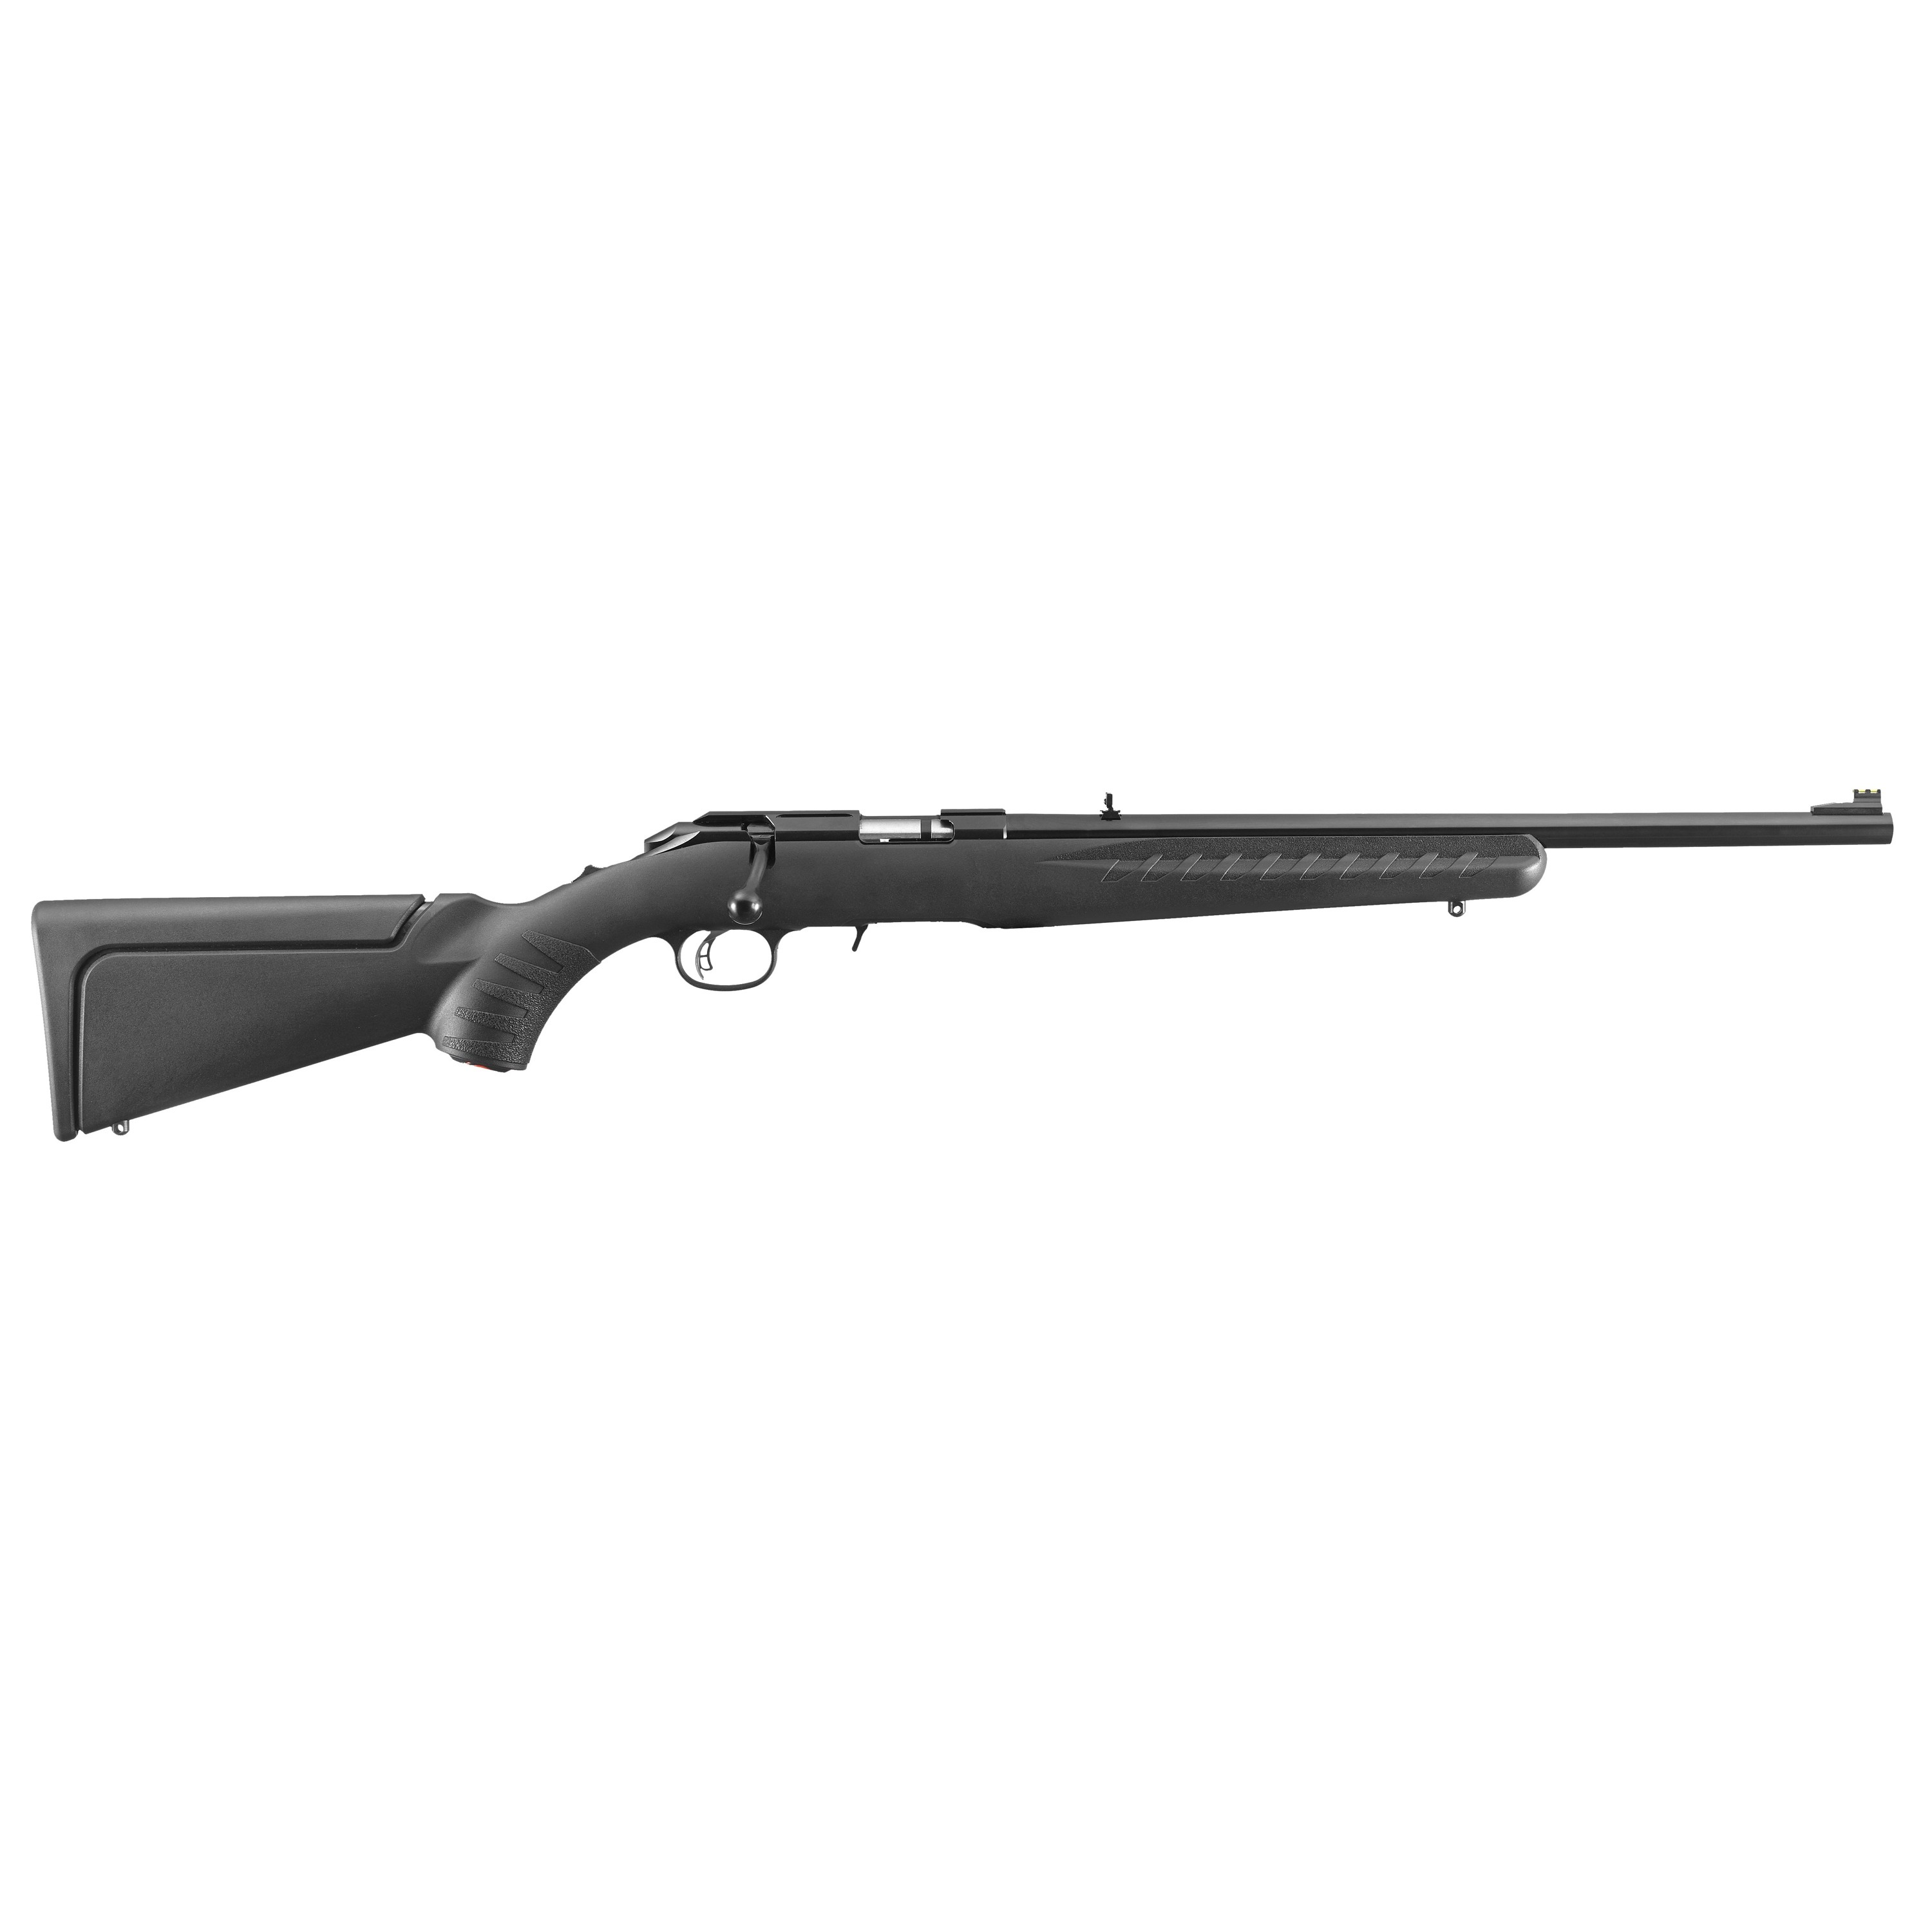 Ruger American Rimfire Compact 22 Long Rifle